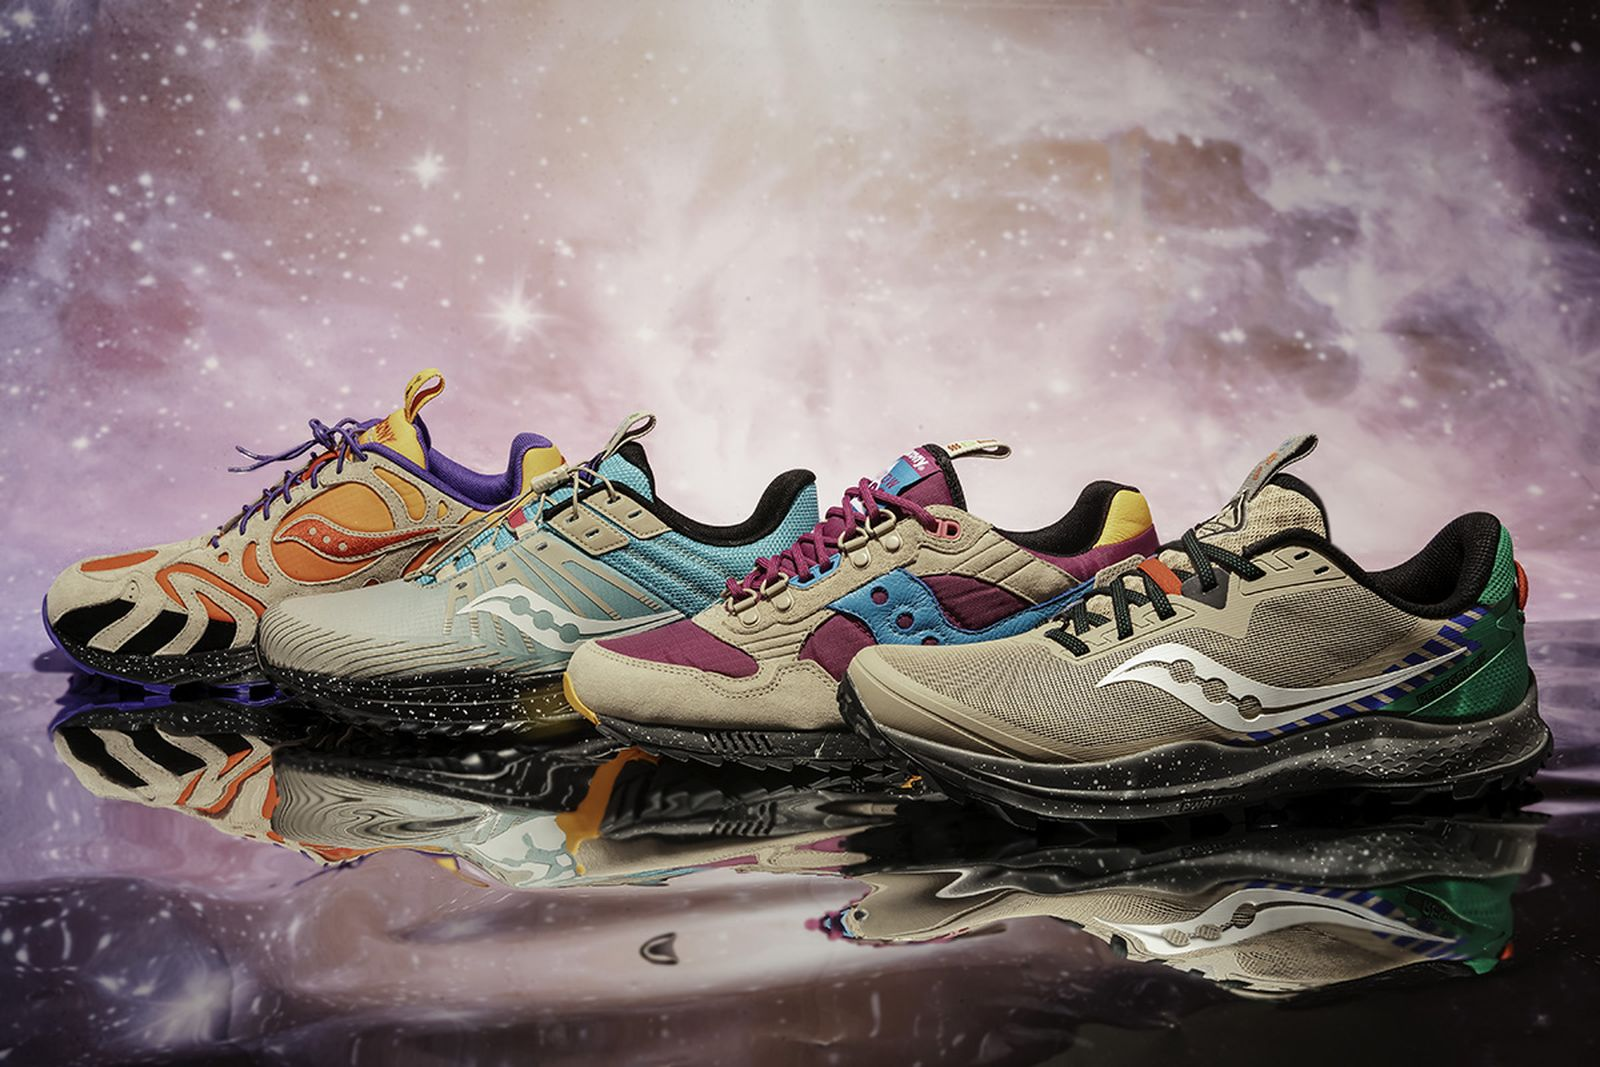 saucony-astrotrail-pack-release-info-0